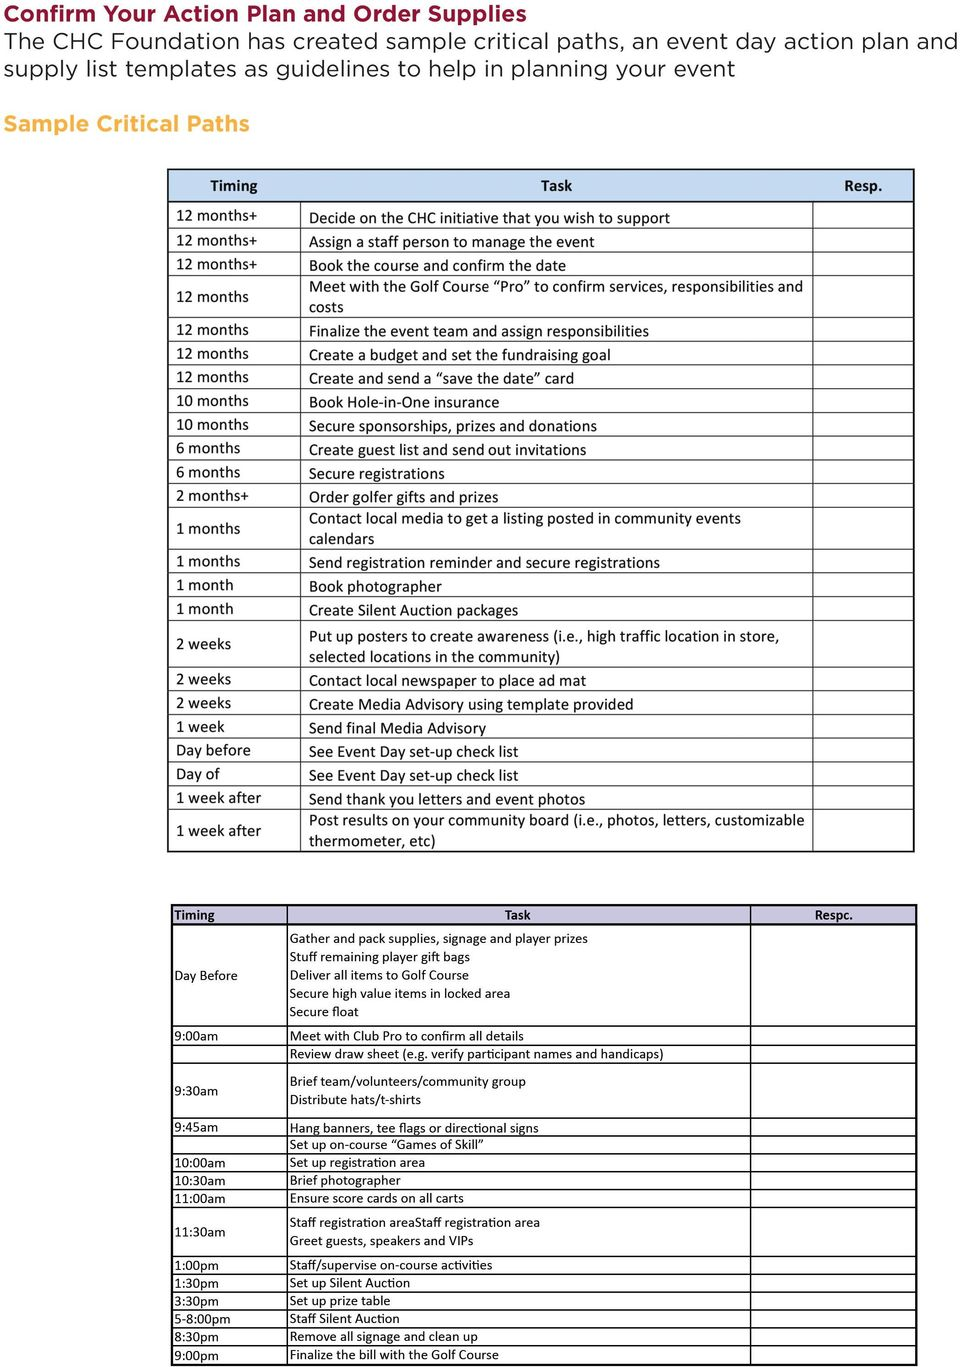 event day action plan and supply list templates as